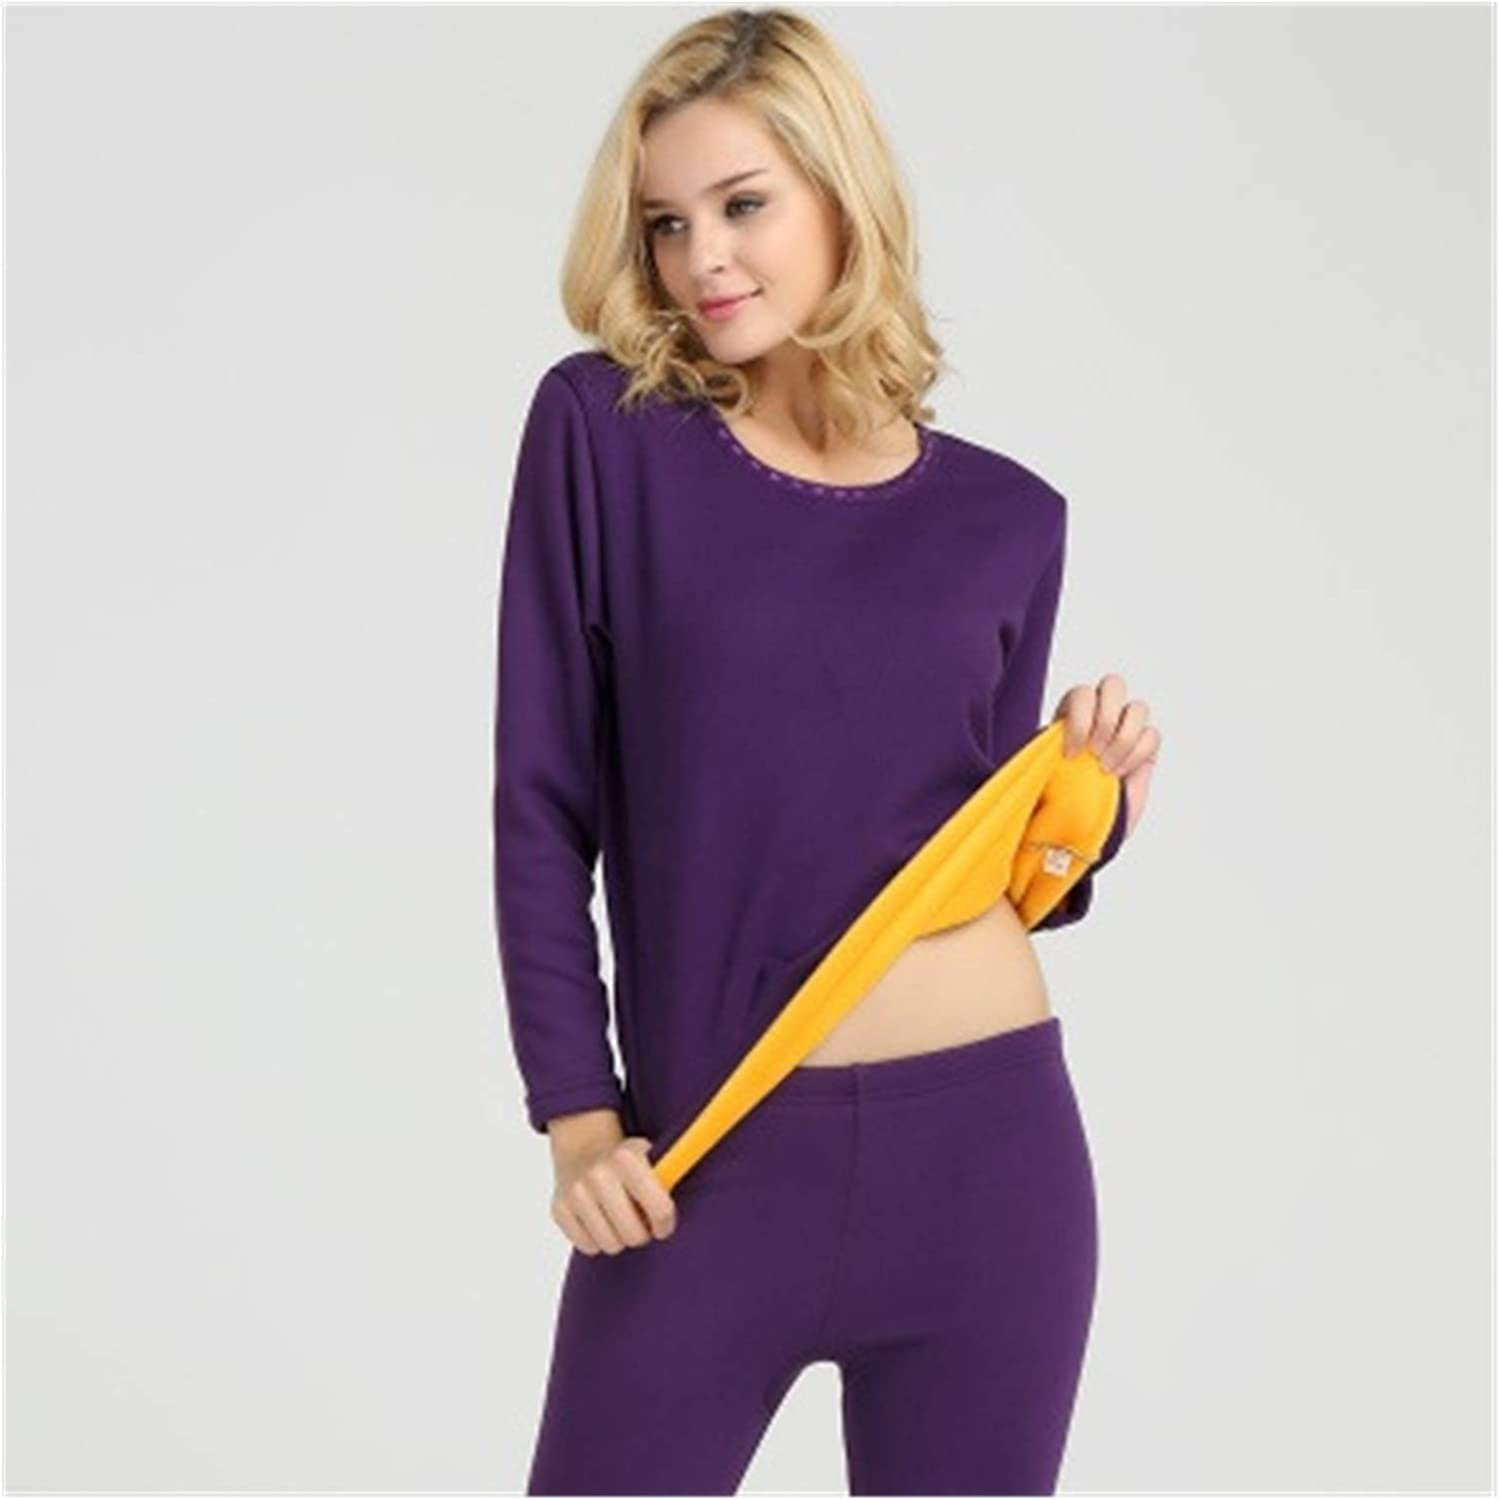 WZNING Thermal Underwear Winter Women Fleece Keep Warm in Cold Weather Size L to 4XL Safety Corrector